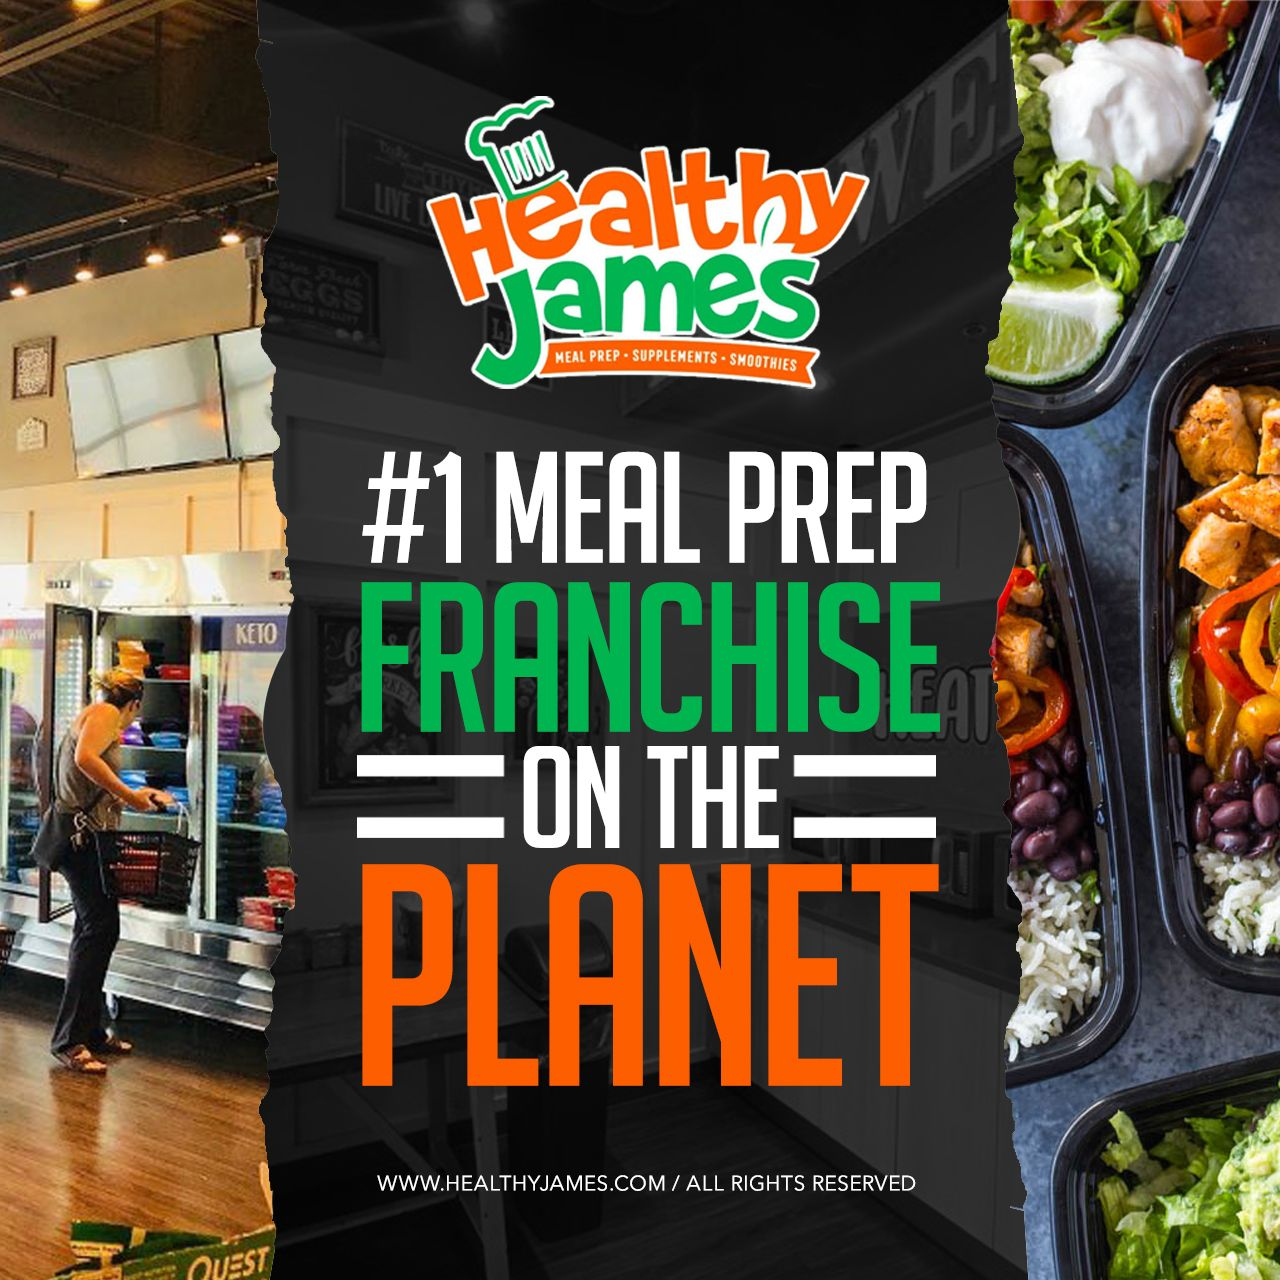 Emerging Food Franchises Rapidly Expanding their Nine Brand Portfolio